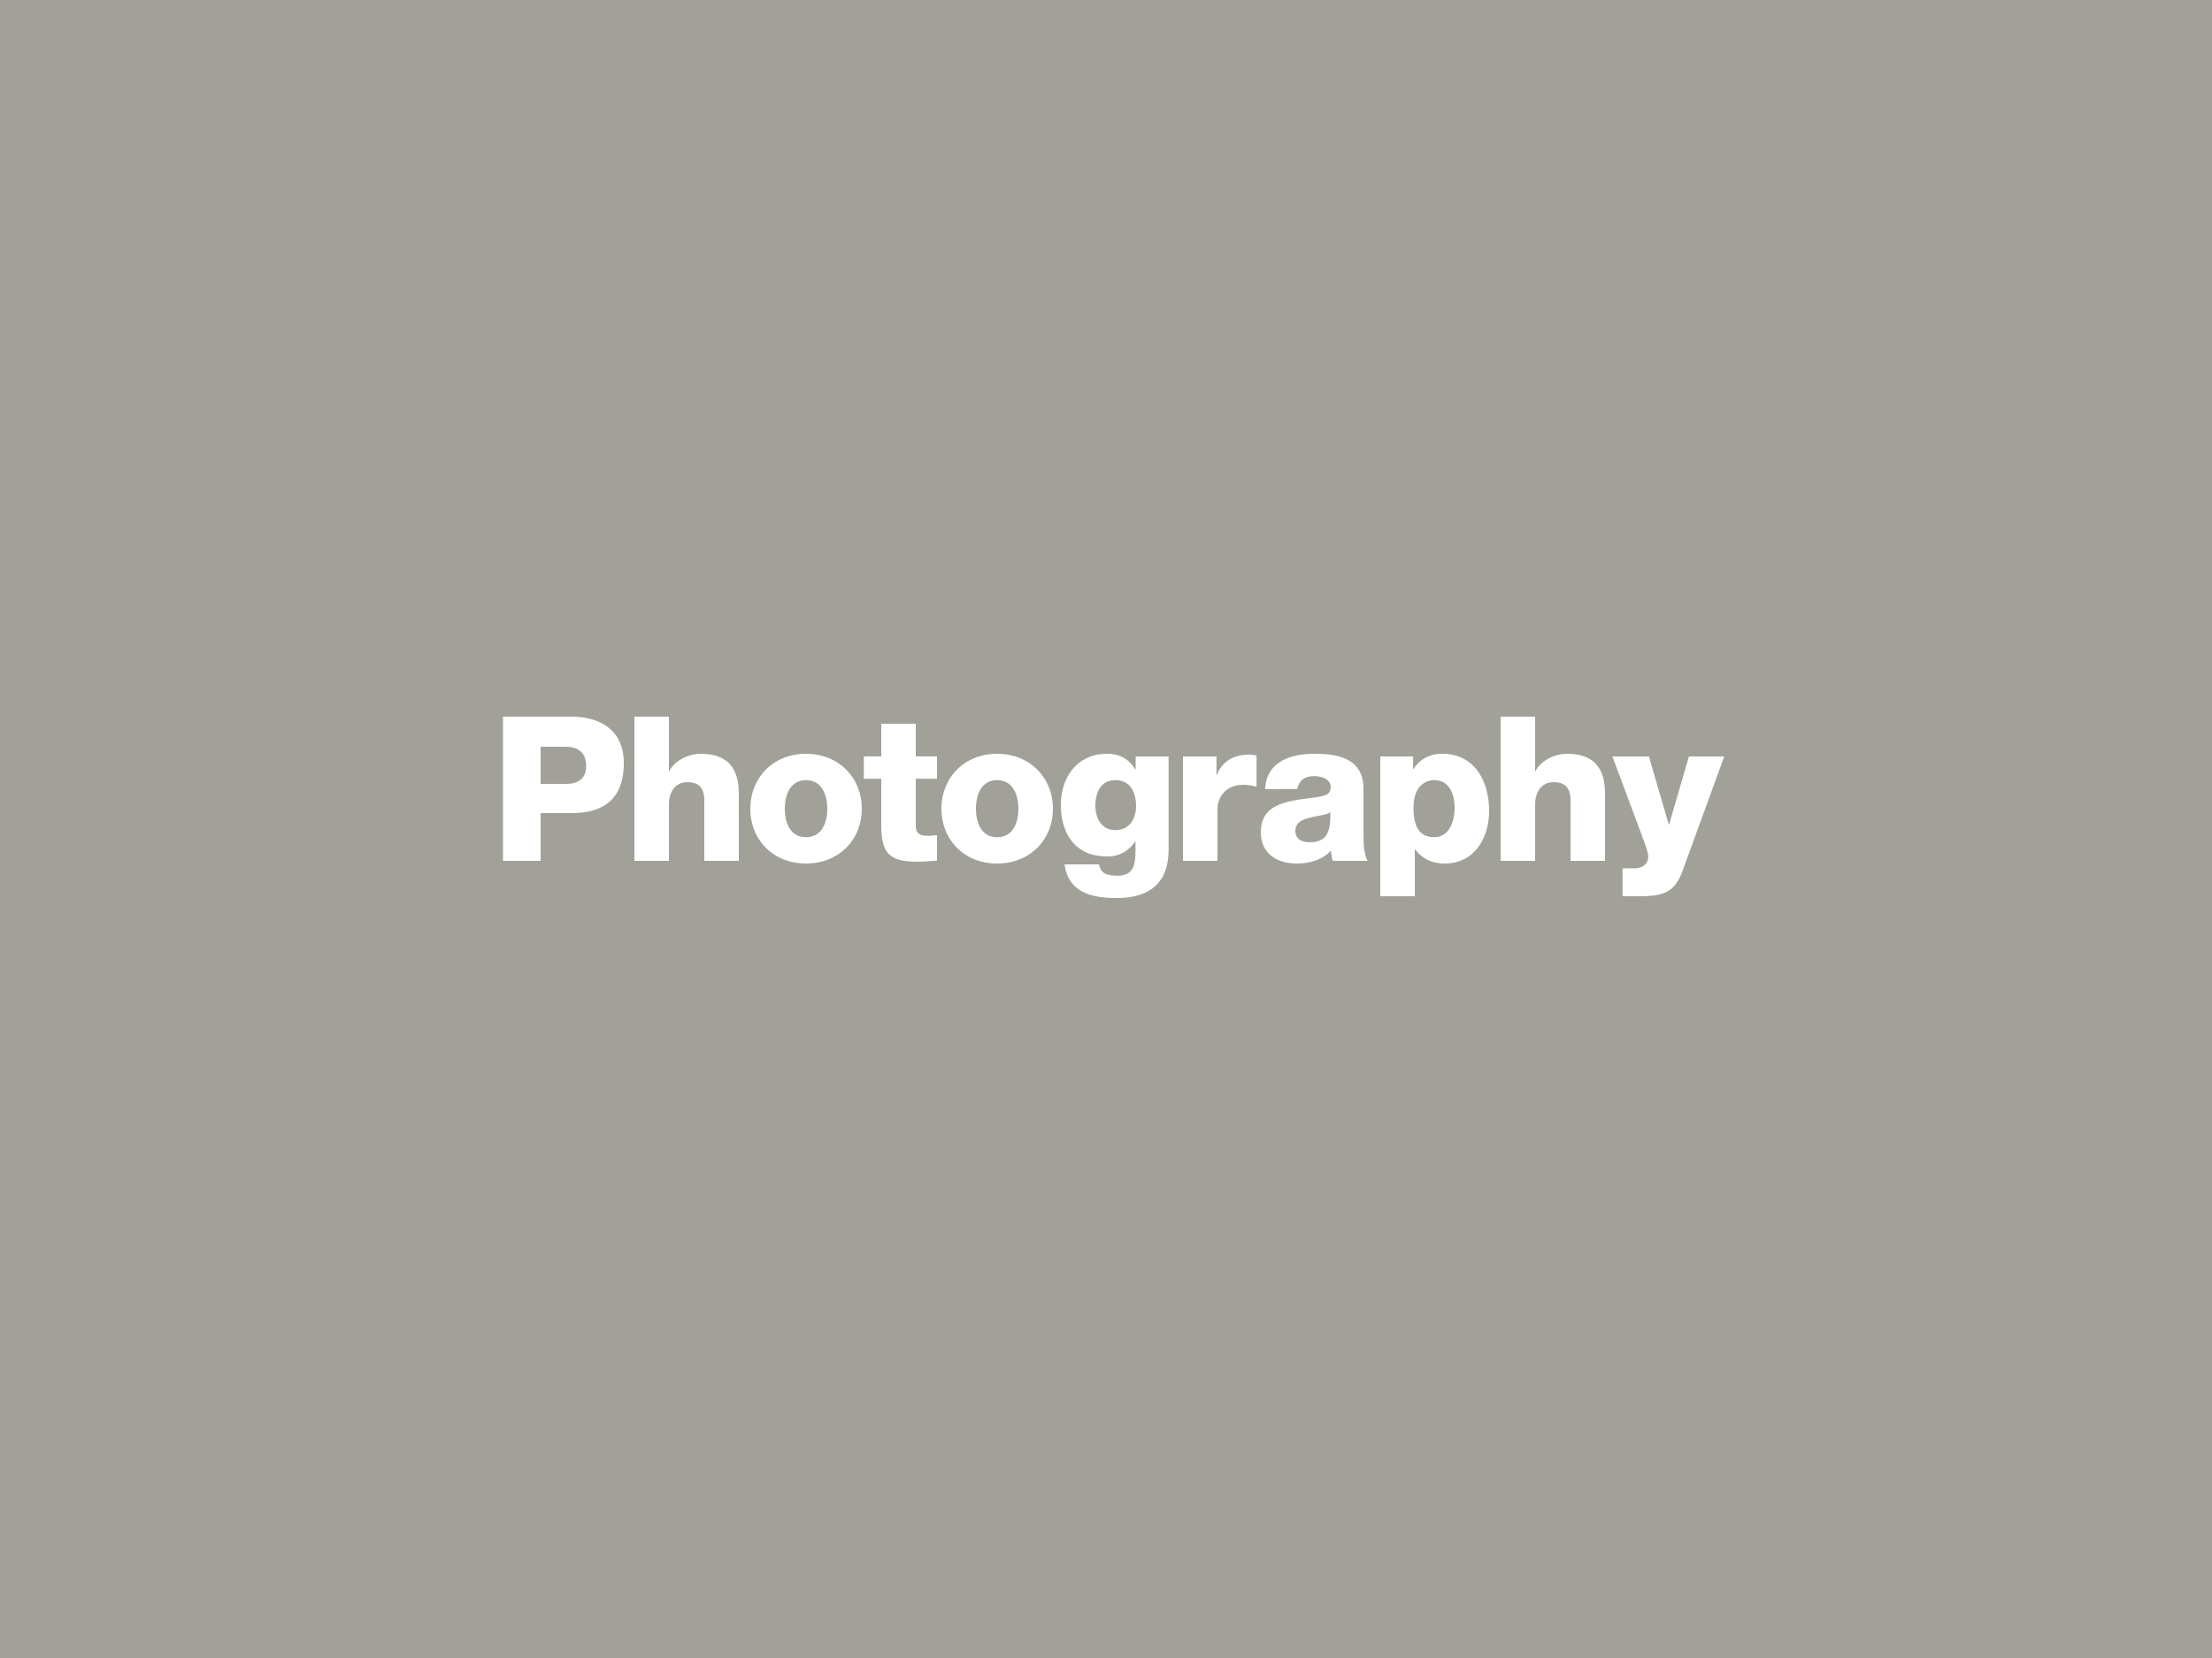 Photography tile.png